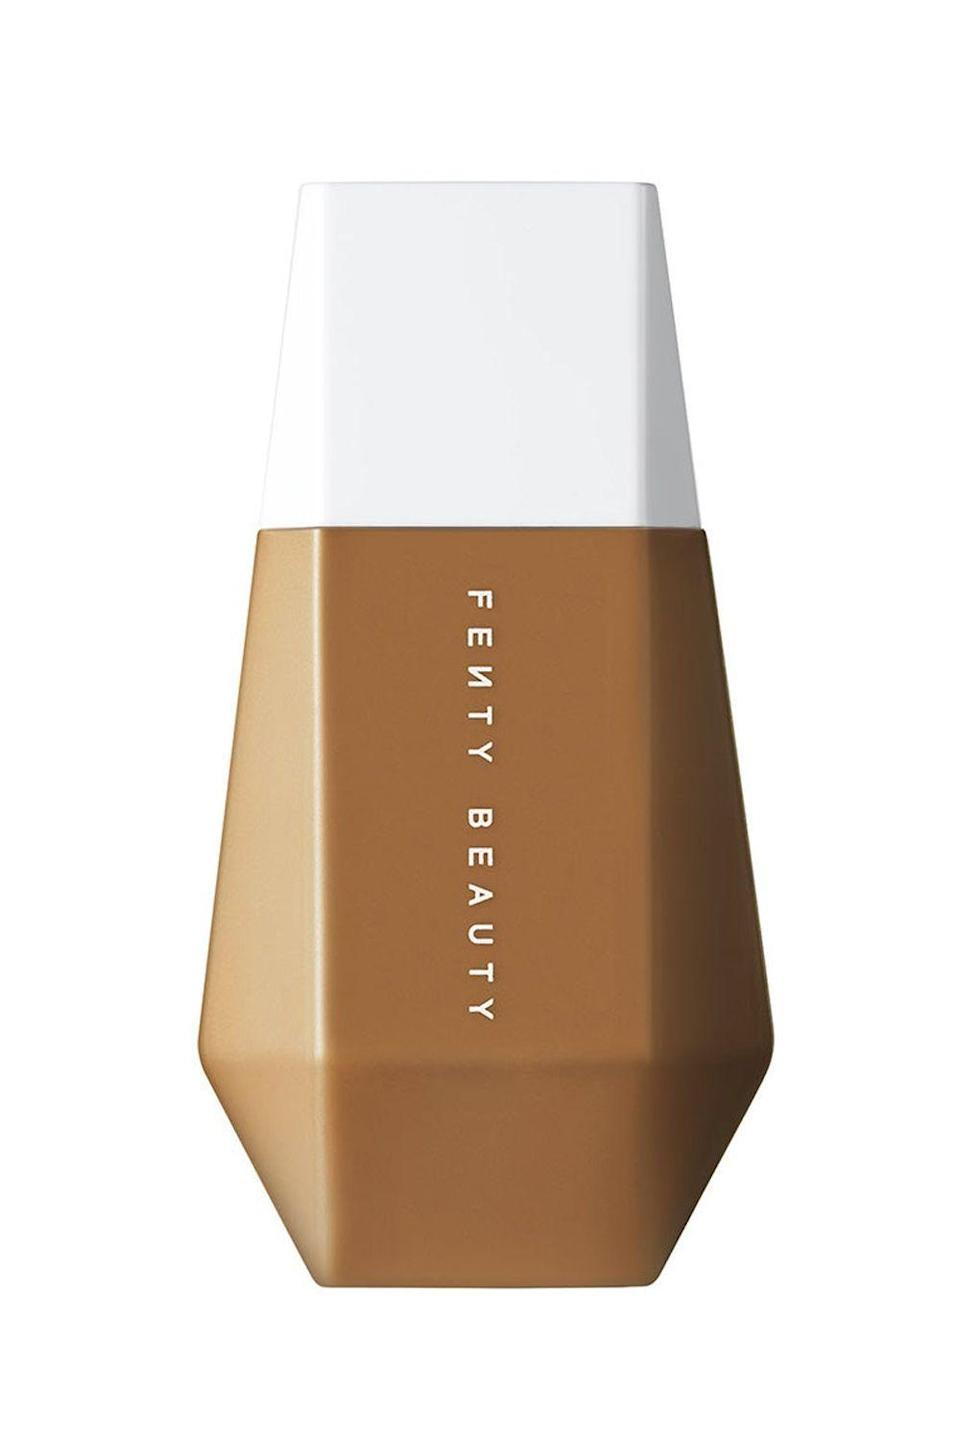 """<p><strong>FENTY BEAUTY by Rihanna</strong></p><p>sephora.com</p><p><strong>$29.50</strong></p><p><a href=""""https://go.redirectingat.com?id=74968X1596630&url=https%3A%2F%2Fwww.sephora.com%2Fproduct%2Ffenty-beauty-rihanna-eaze-drop-blurring-skin-tint-P470025&sref=https%3A%2F%2Fwww.cosmopolitan.com%2Fstyle-beauty%2Fbeauty%2Fg36094404%2Fbest-skin-tints%2F"""" rel=""""nofollow noopener"""" target=""""_blank"""" data-ylk=""""slk:Shop Now"""" class=""""link rapid-noclick-resp"""">Shop Now</a></p><p>Leave it to RiRi to create a skin tint that's nothing short of magic. It <strong>comes in 25 shades (finding your perfect color match = NBD)</strong>, blurs the redness and <a href=""""https://www.cosmopolitan.com/style-beauty/beauty/a35325966/how-to-treat-hyperpigmentation-deep-skin/"""" rel=""""nofollow noopener"""" target=""""_blank"""" data-ylk=""""slk:hyperpigmentation"""" class=""""link rapid-noclick-resp"""">hyperpigmentation</a>, smooth rough texture, and has a flexible finish that won't settle into pores or fine lines.</p>"""